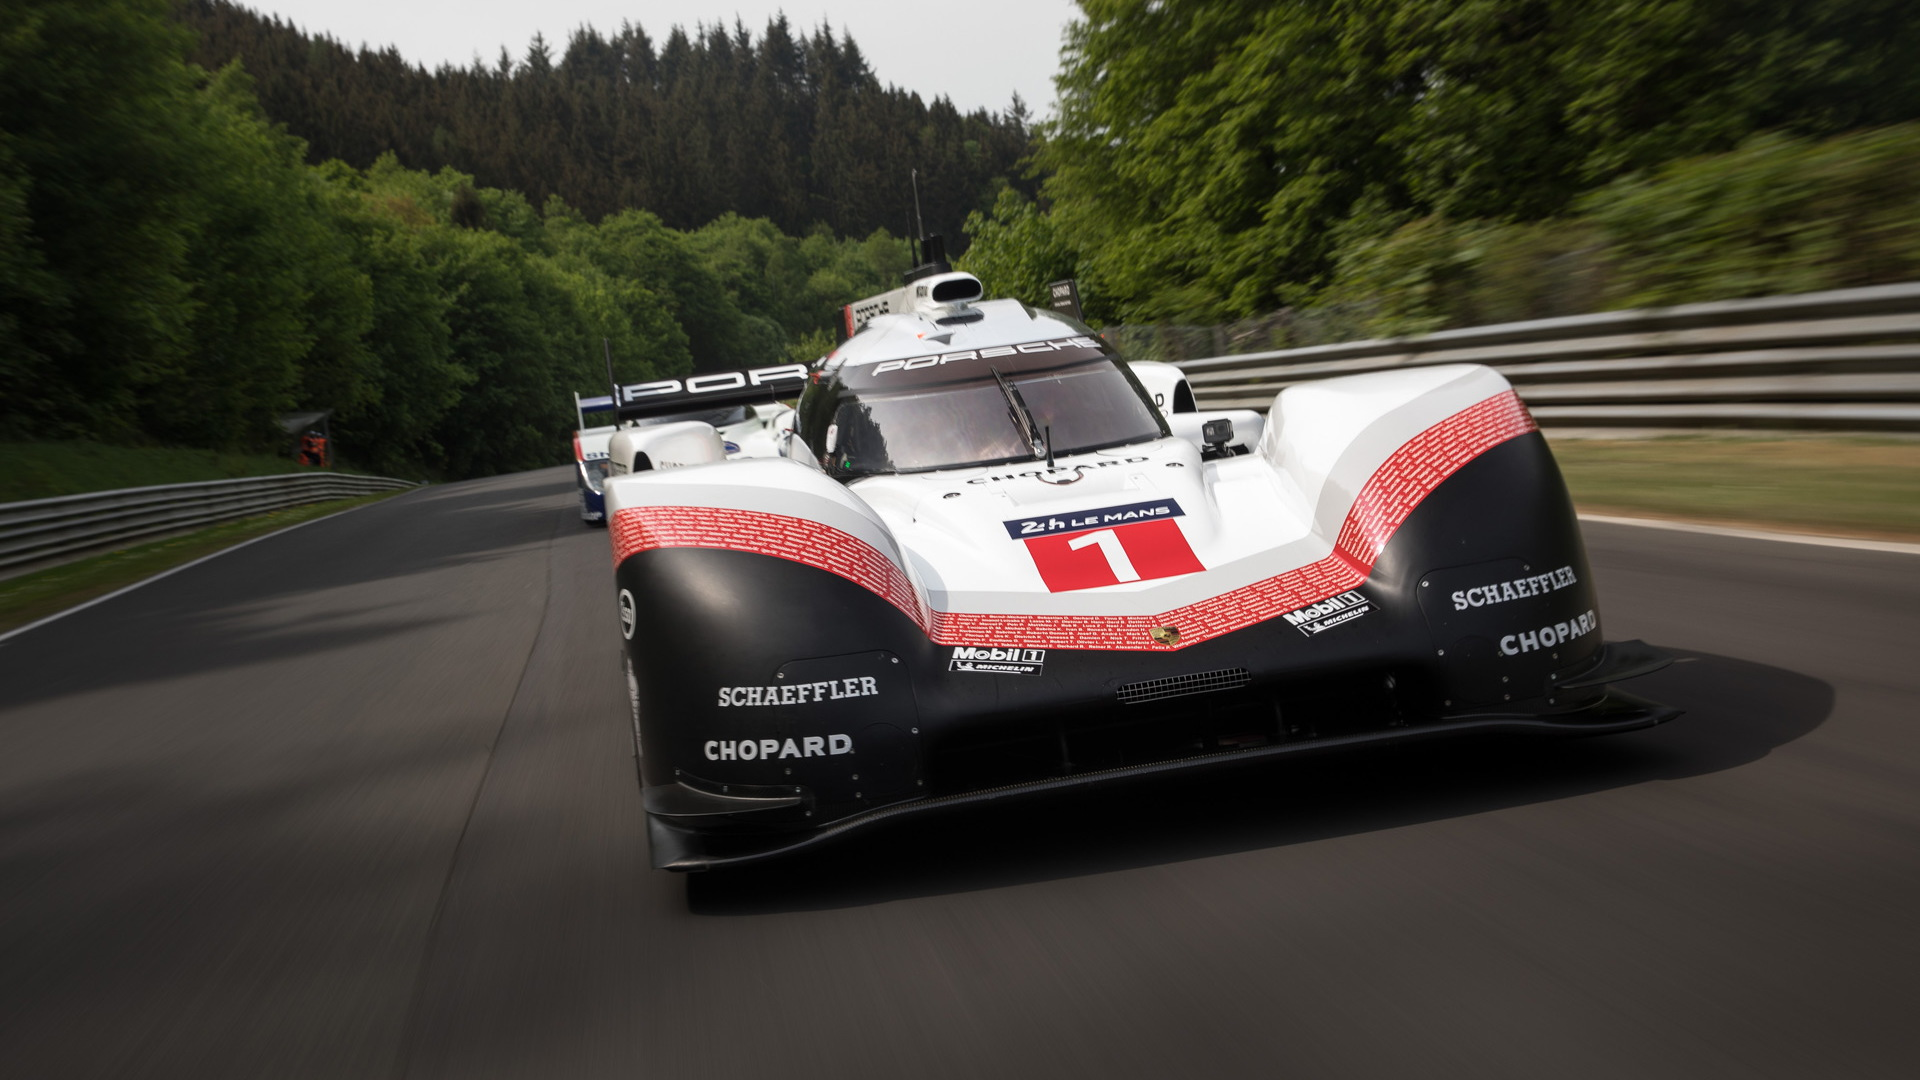 Porsche 919 Evo at the Nürburgring